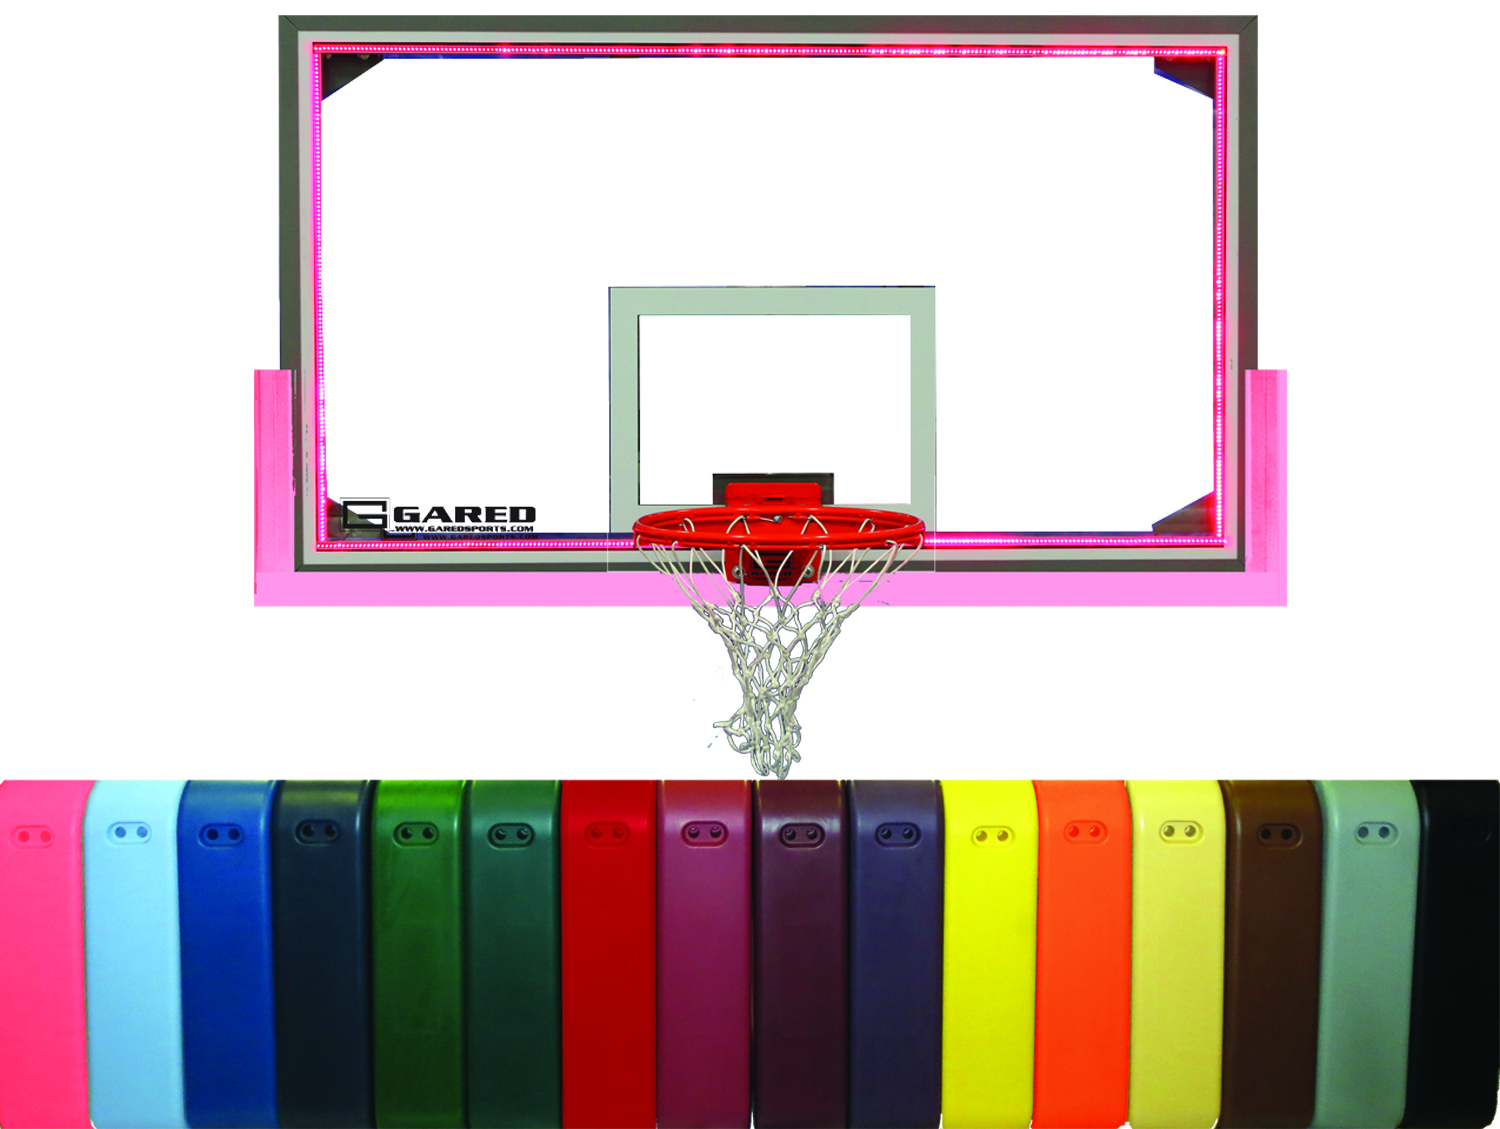 Gared Oversized Glass Backboard Basketball Main Court Package (PKRG20PM-5) Shown in Pink color.